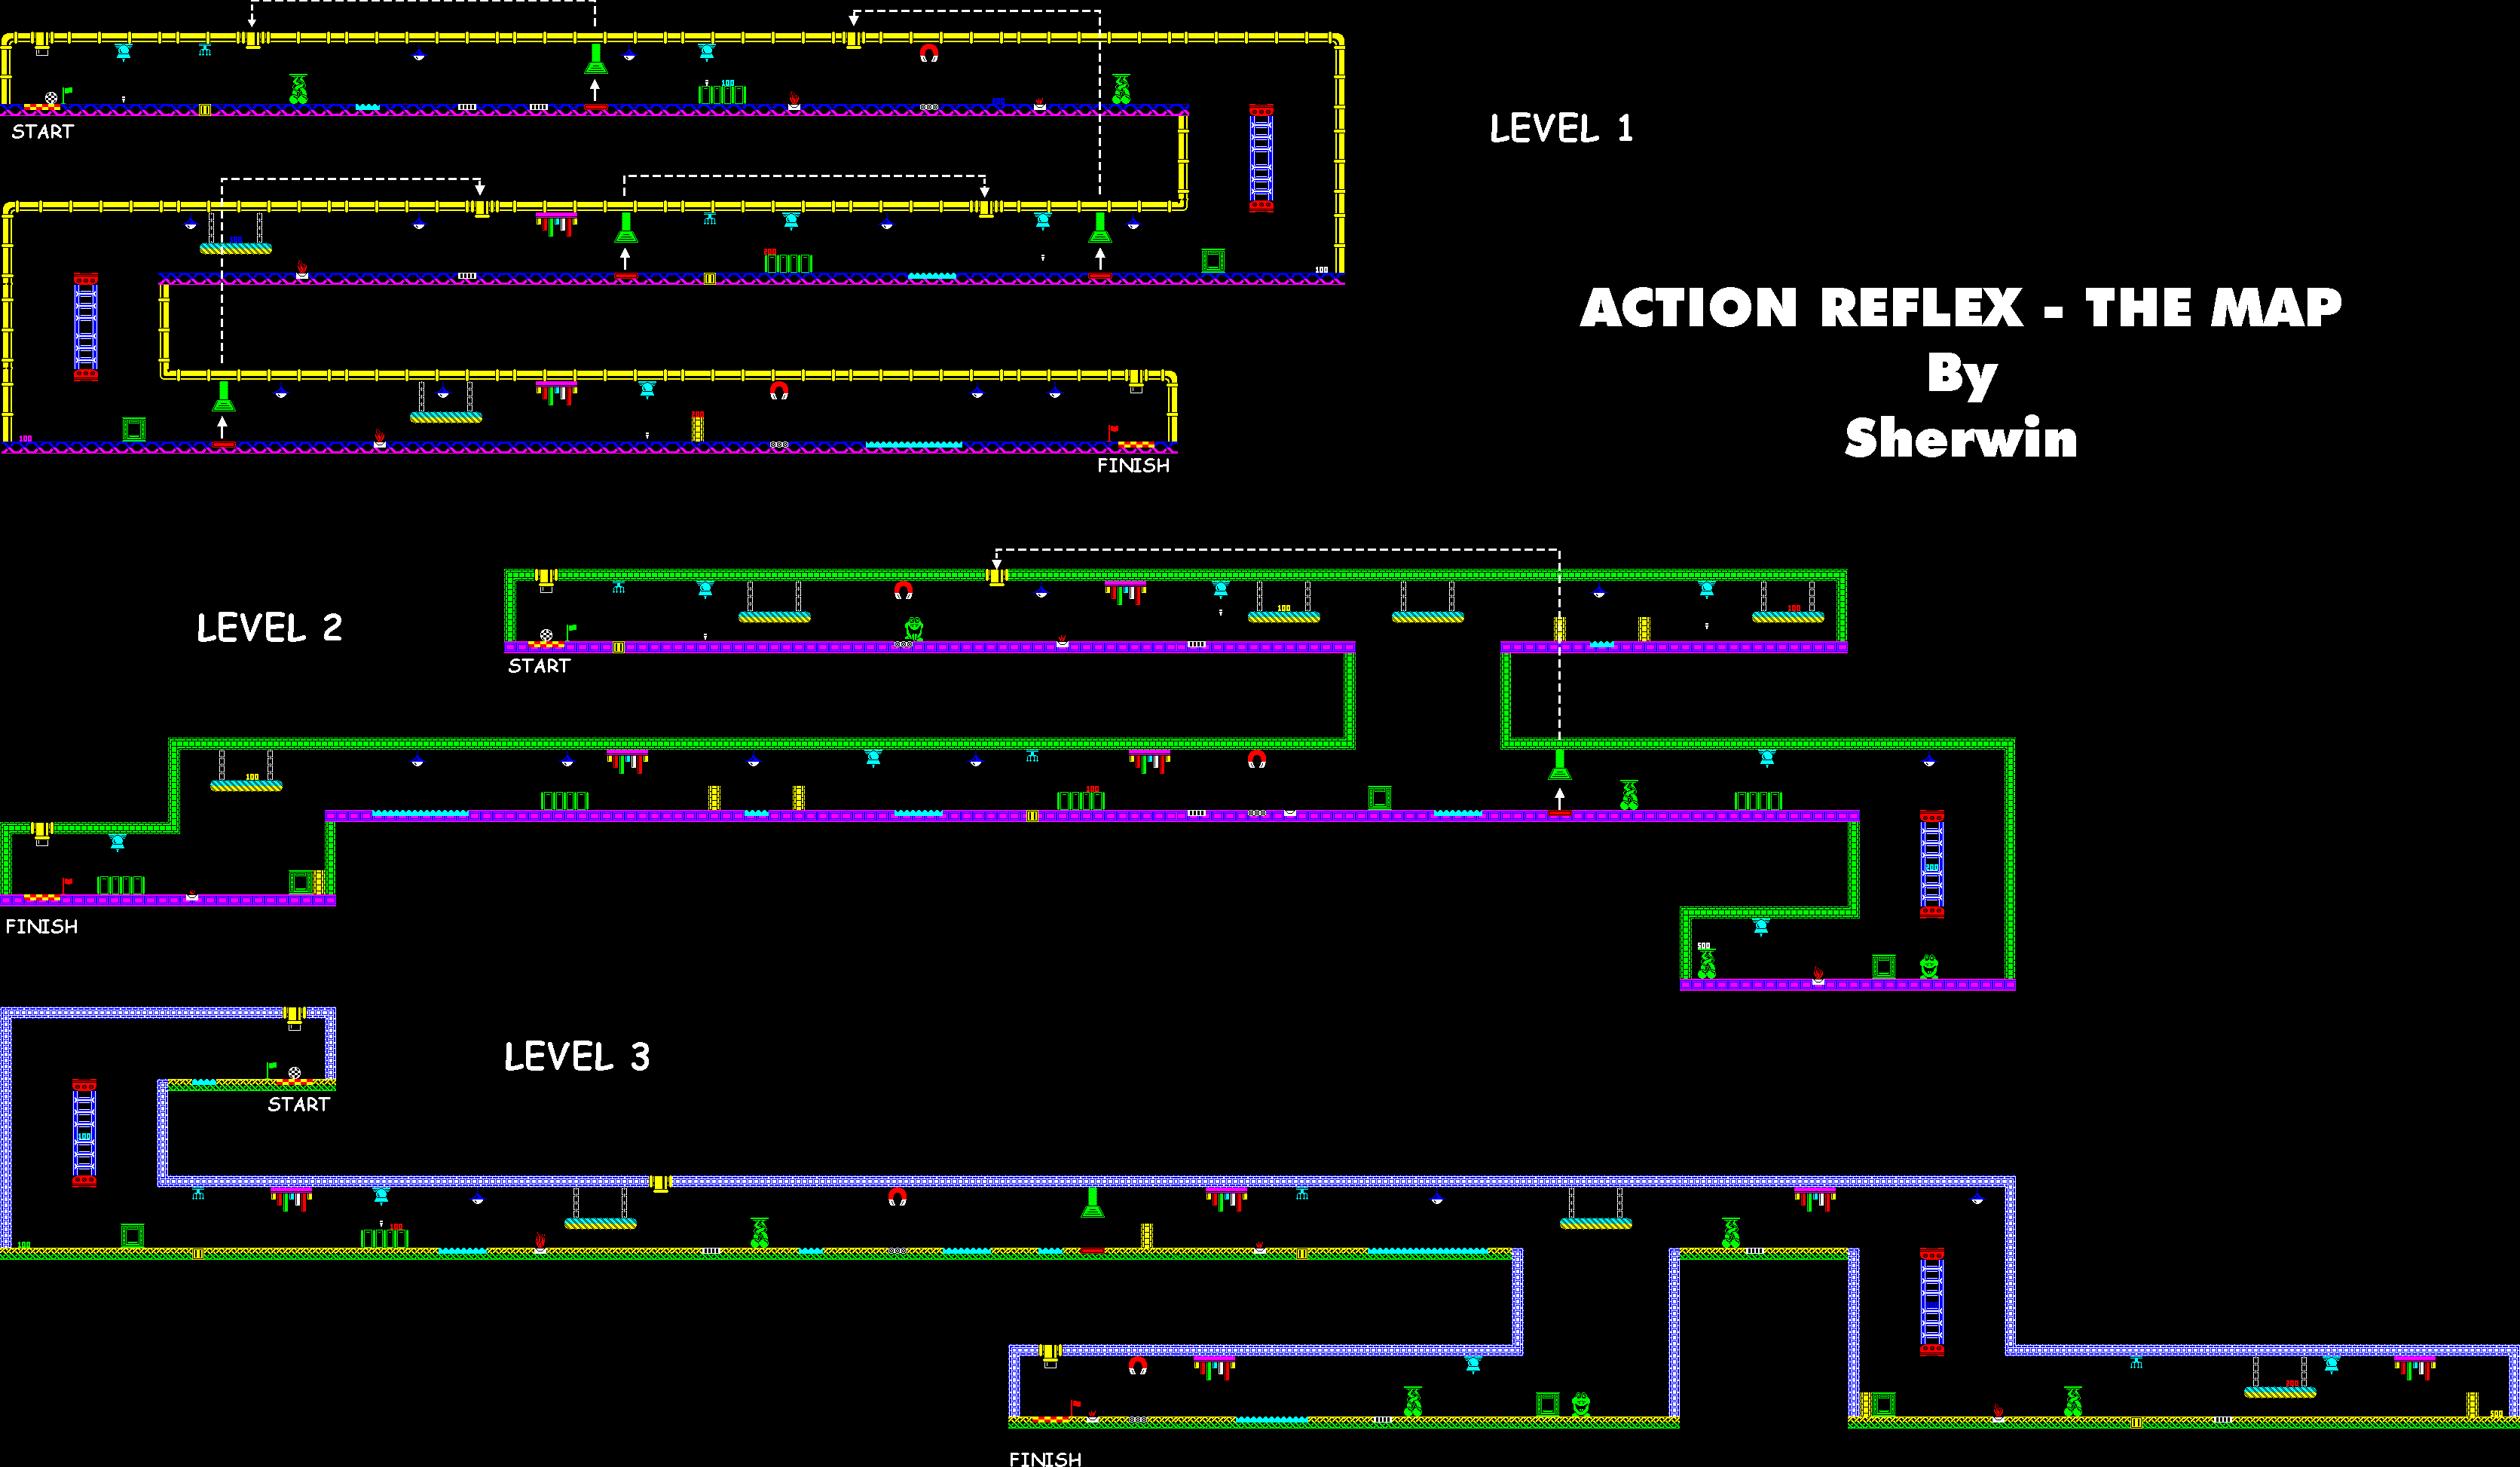 Action Reflex - The Map